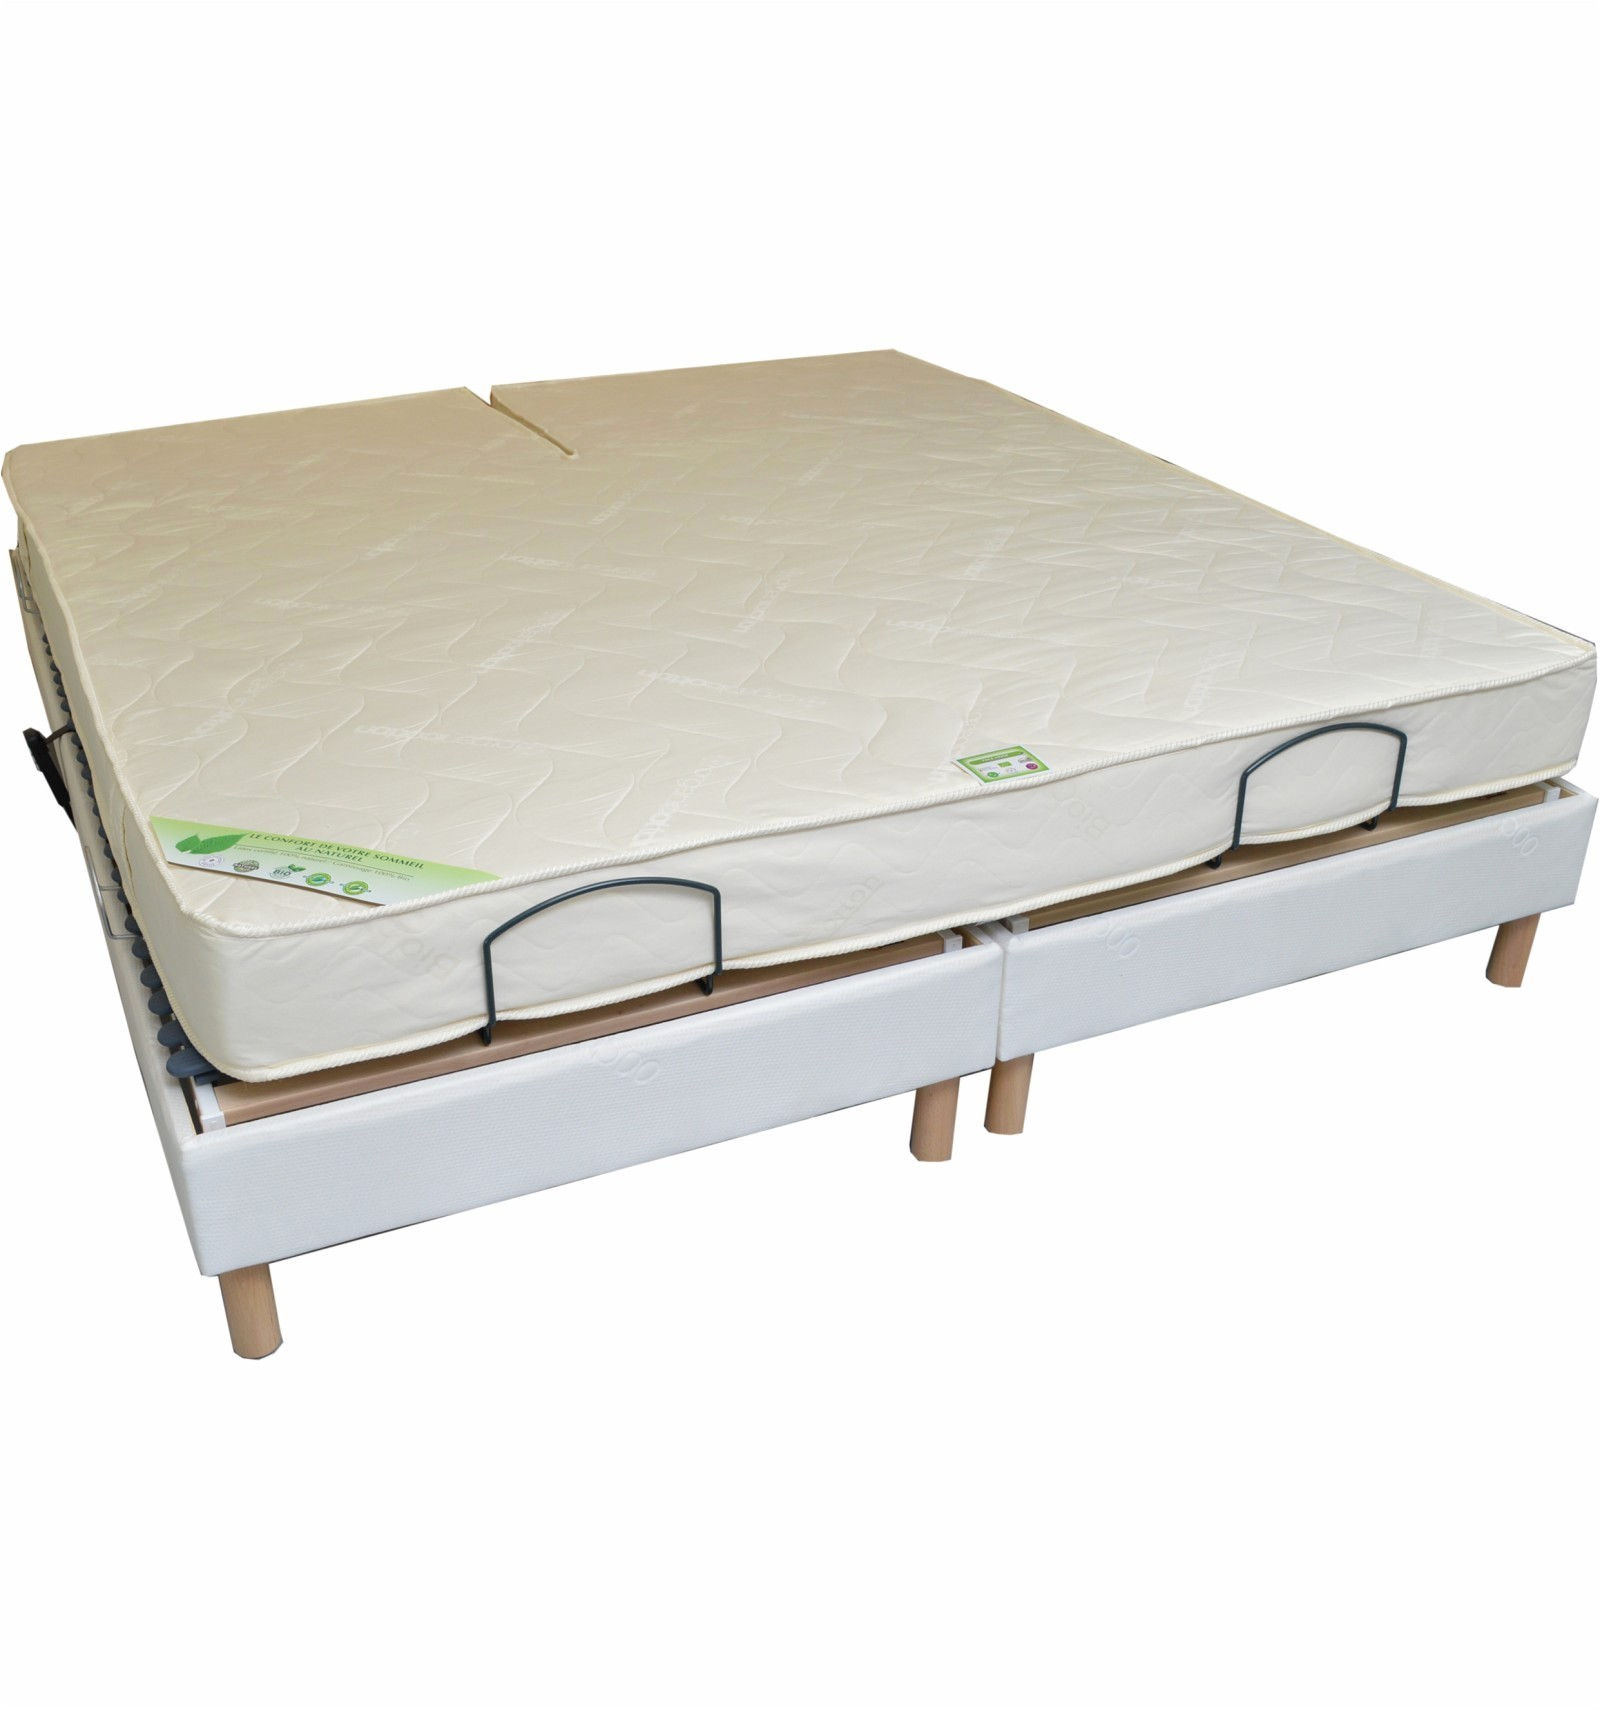 matelas simmons eliott avec chelsea park gallery of simple bz idees et 100x190 awesome bio latex de relaxation 160x200 bi t c3 83 c2 aate naturel l at gold firm